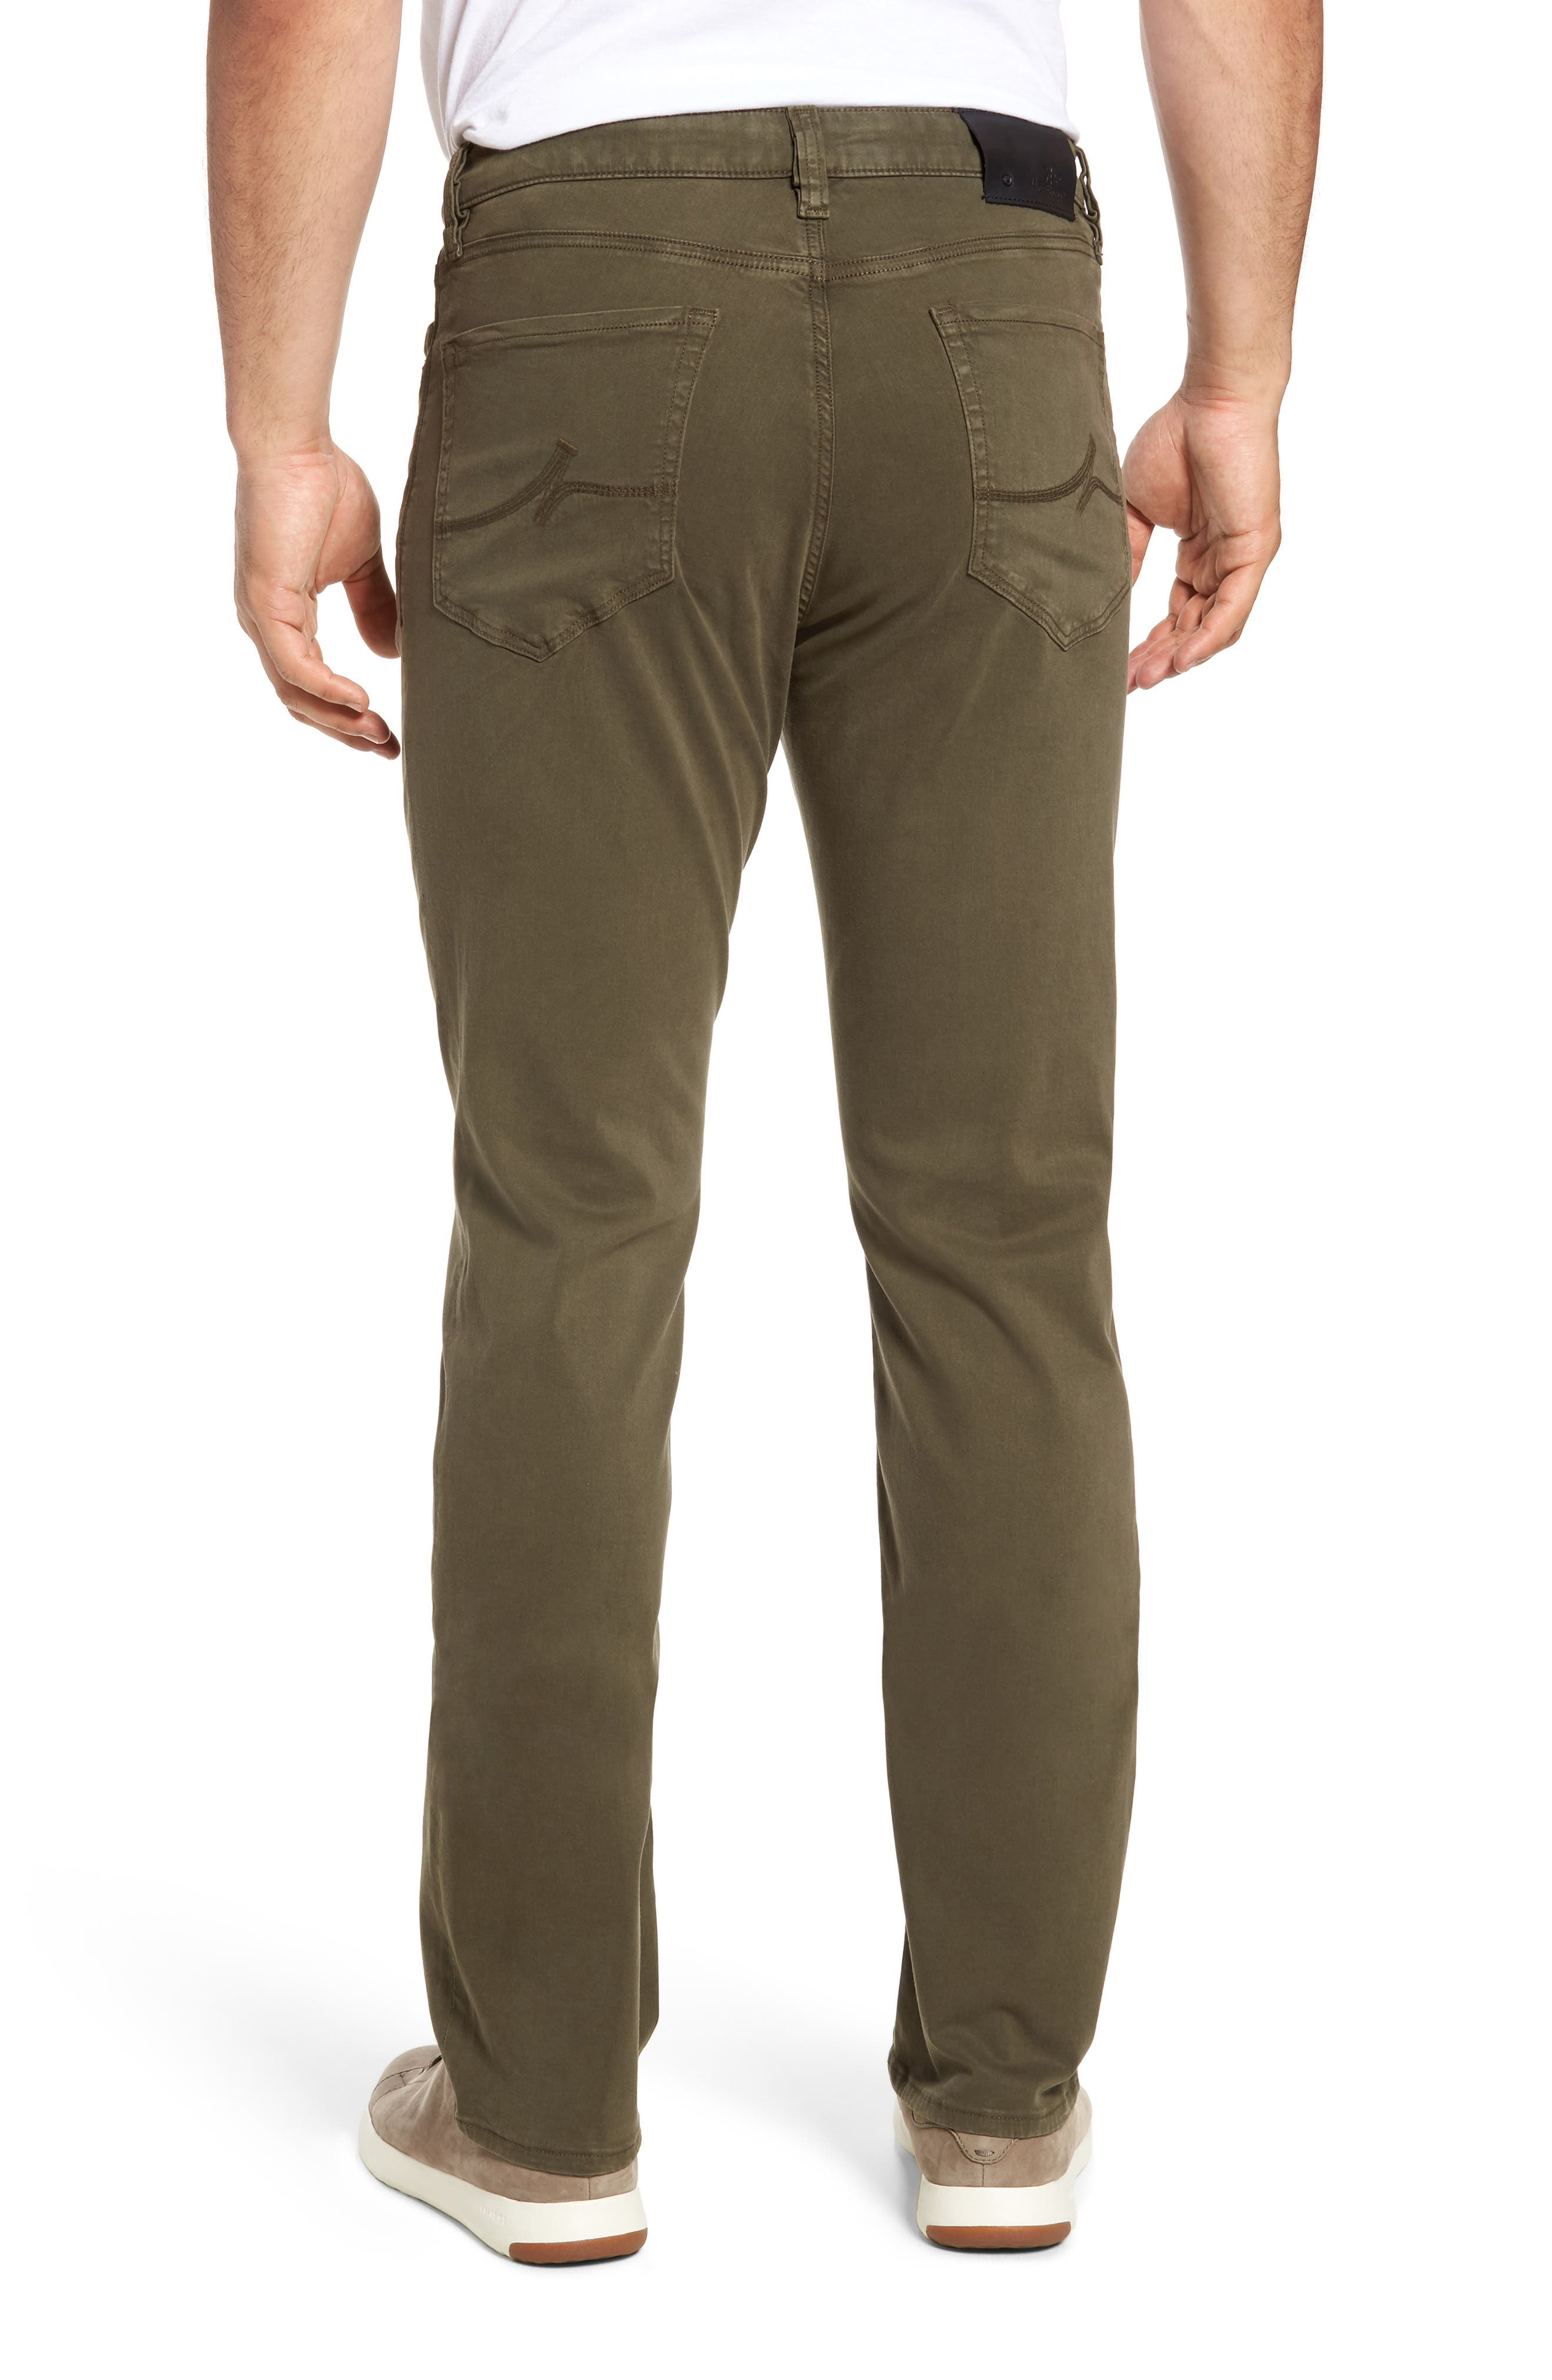 Charisma Relaxed Fit Pants,                             Alternate thumbnail 2, color,                             300